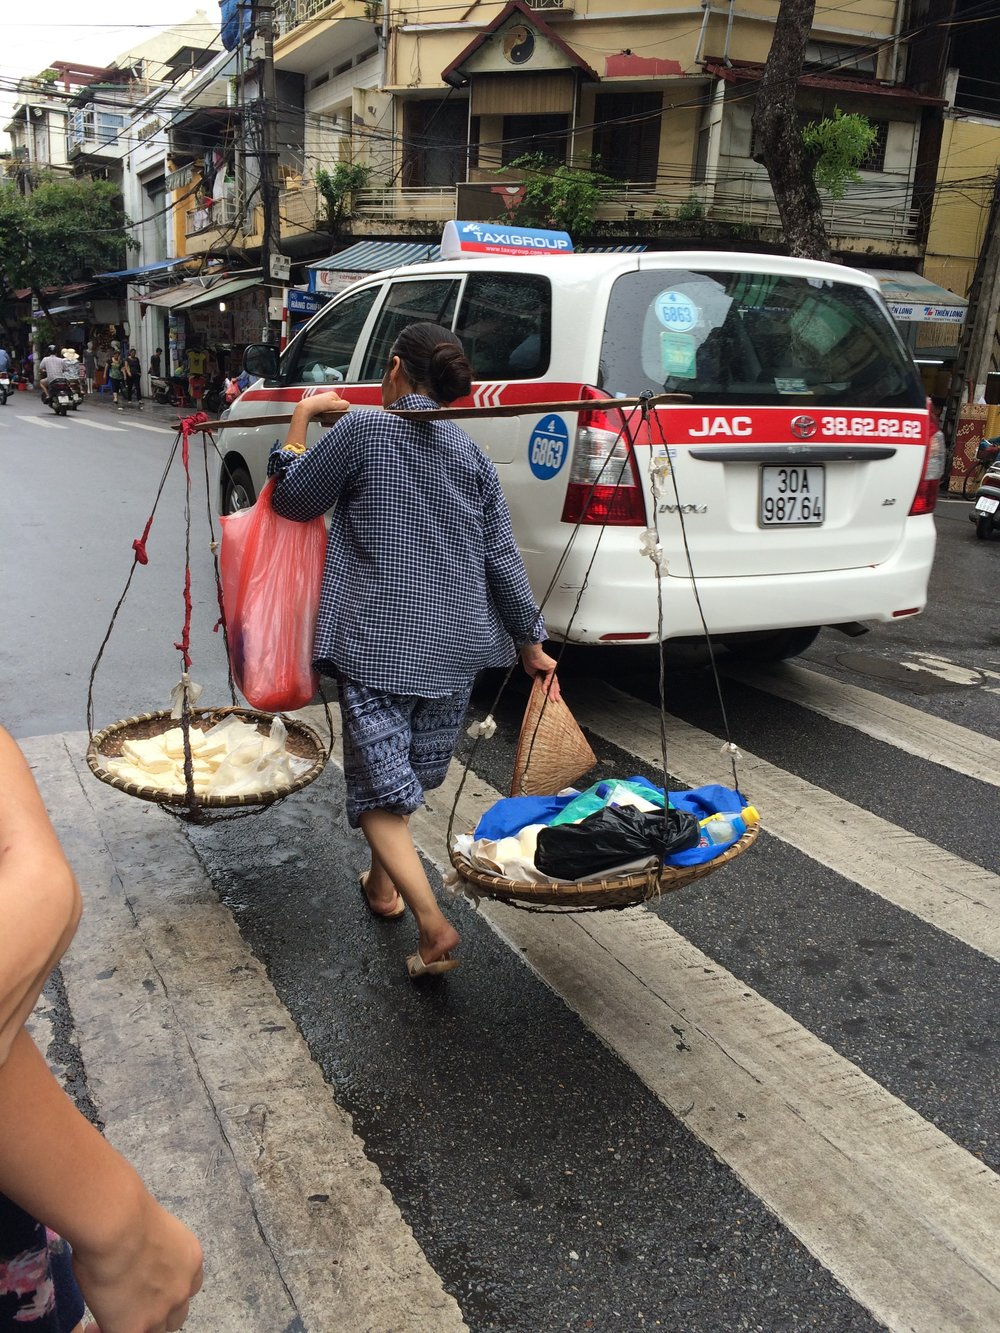 Hanoi just never quits